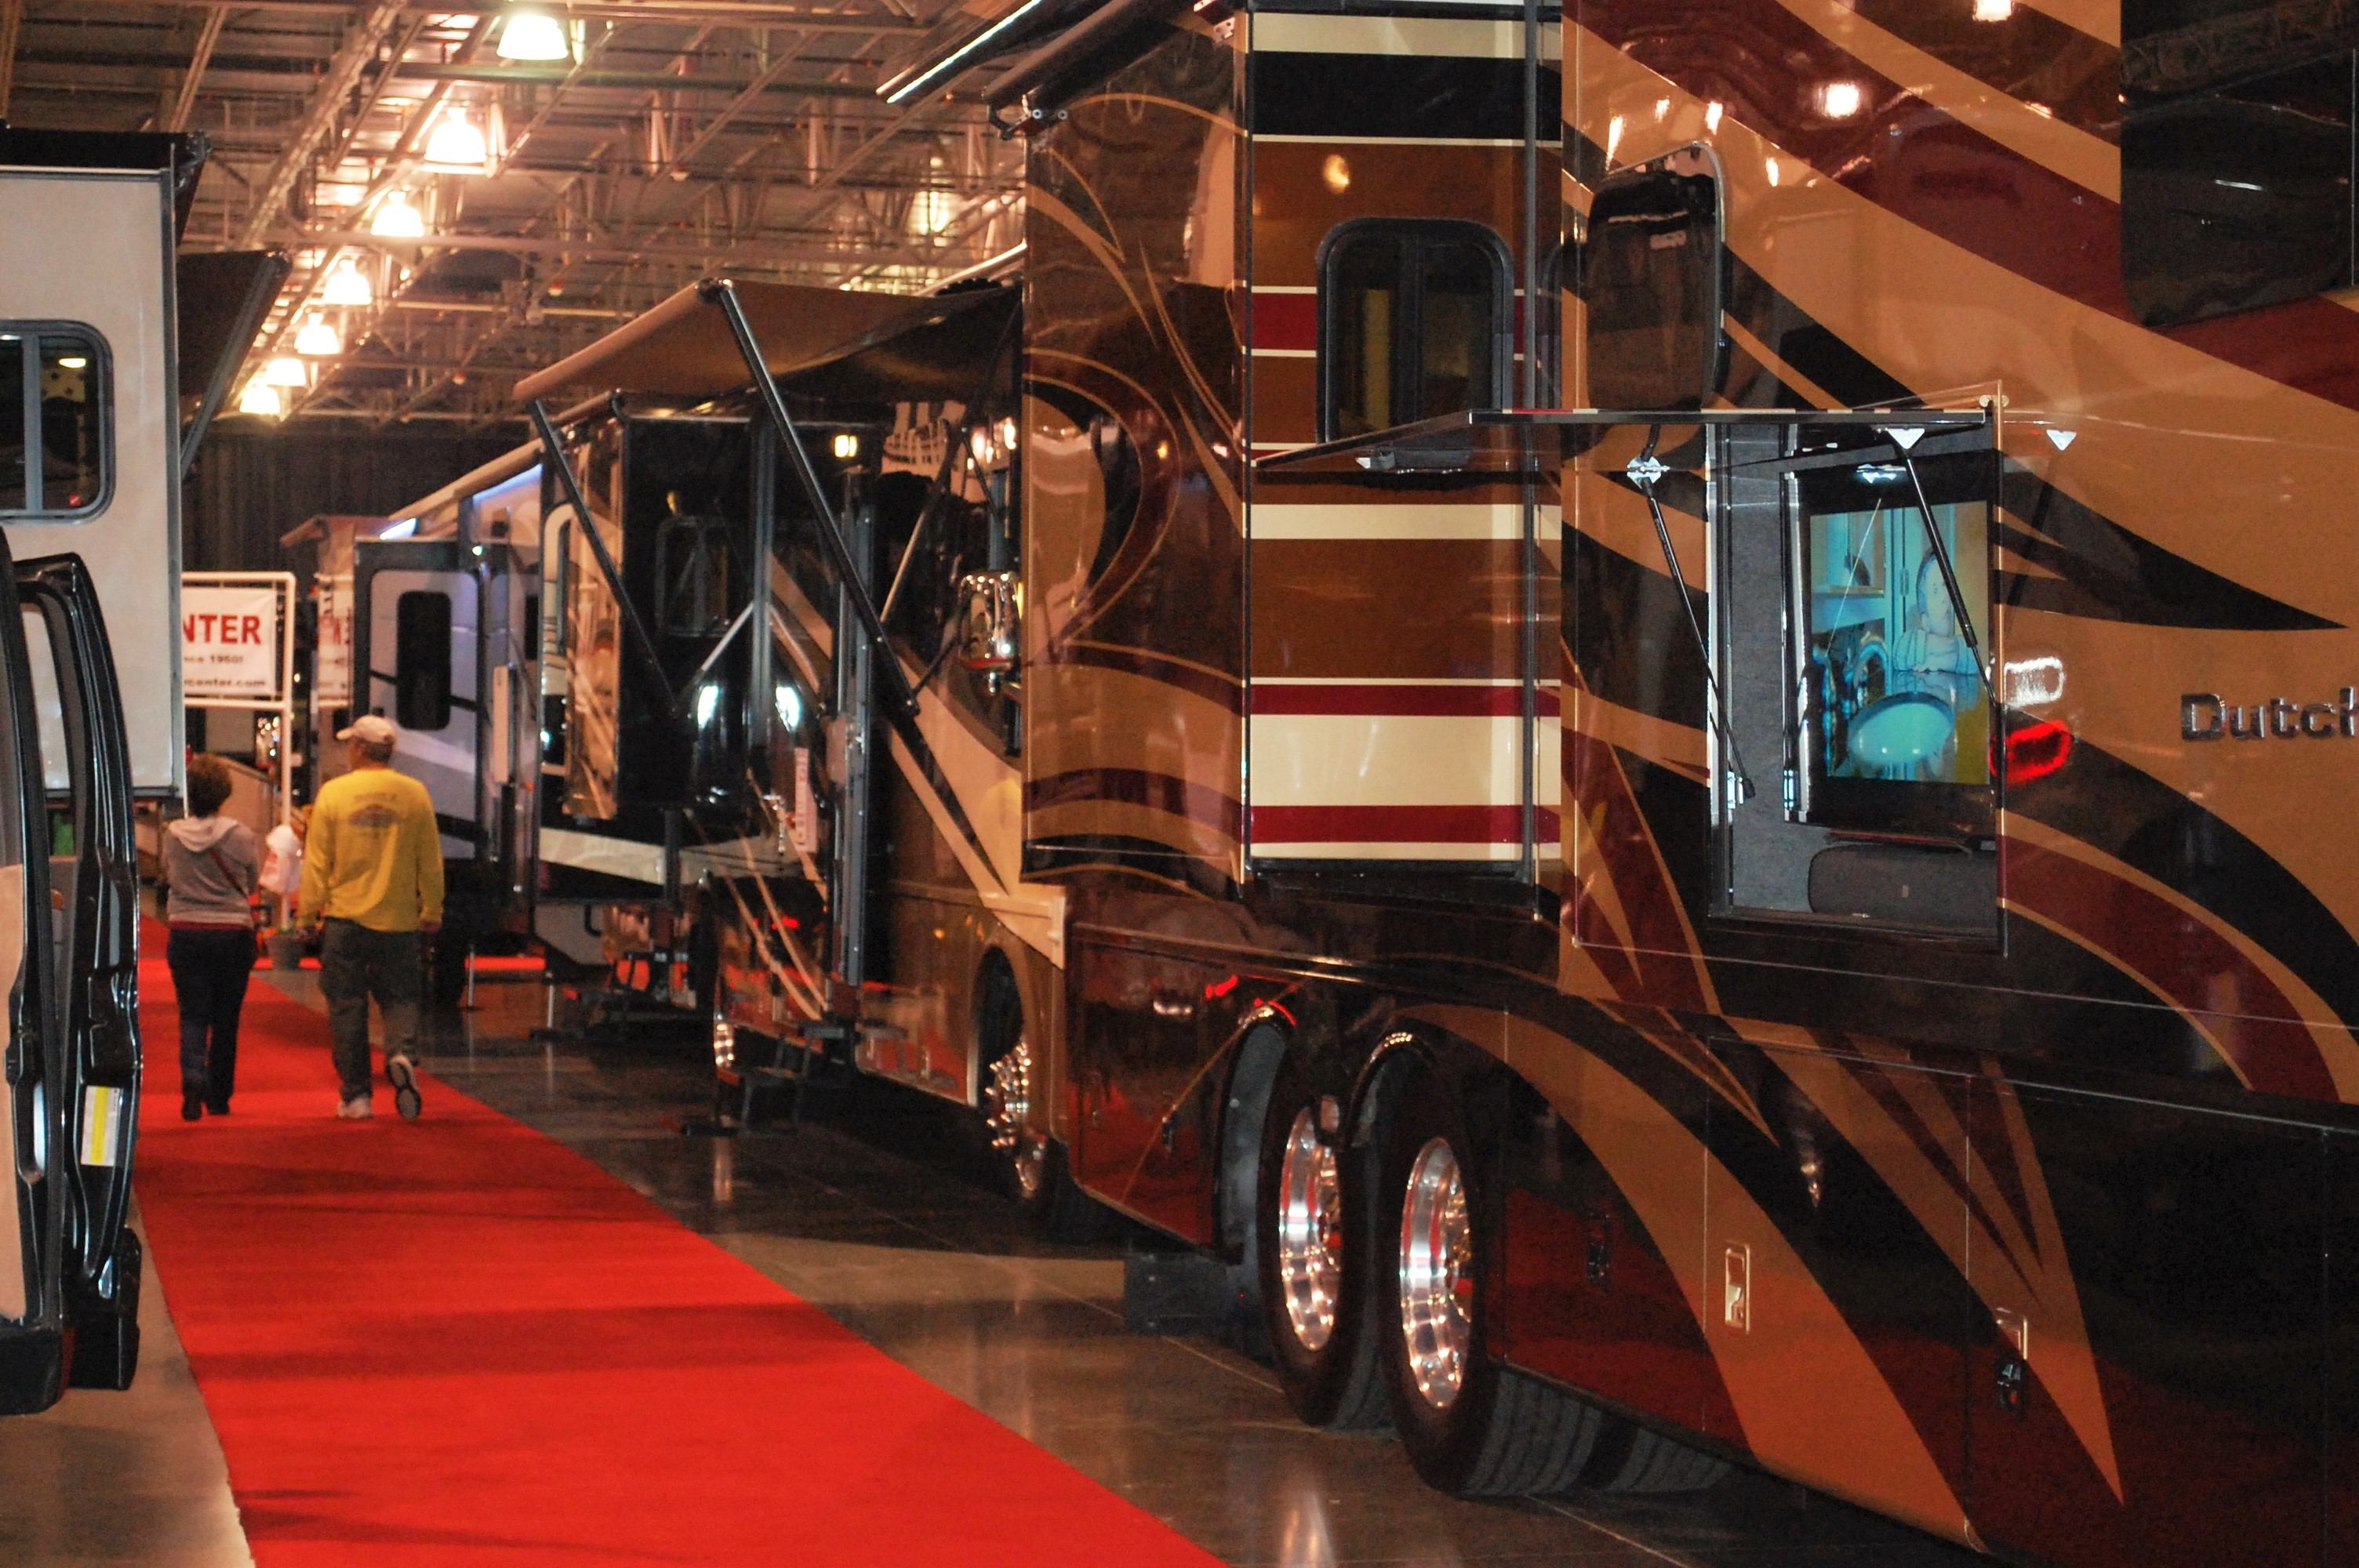 Northwest Federal Credit Union >> 2017-2018 MARVAC Camper & RV Show Schedule Announced - MARVAC